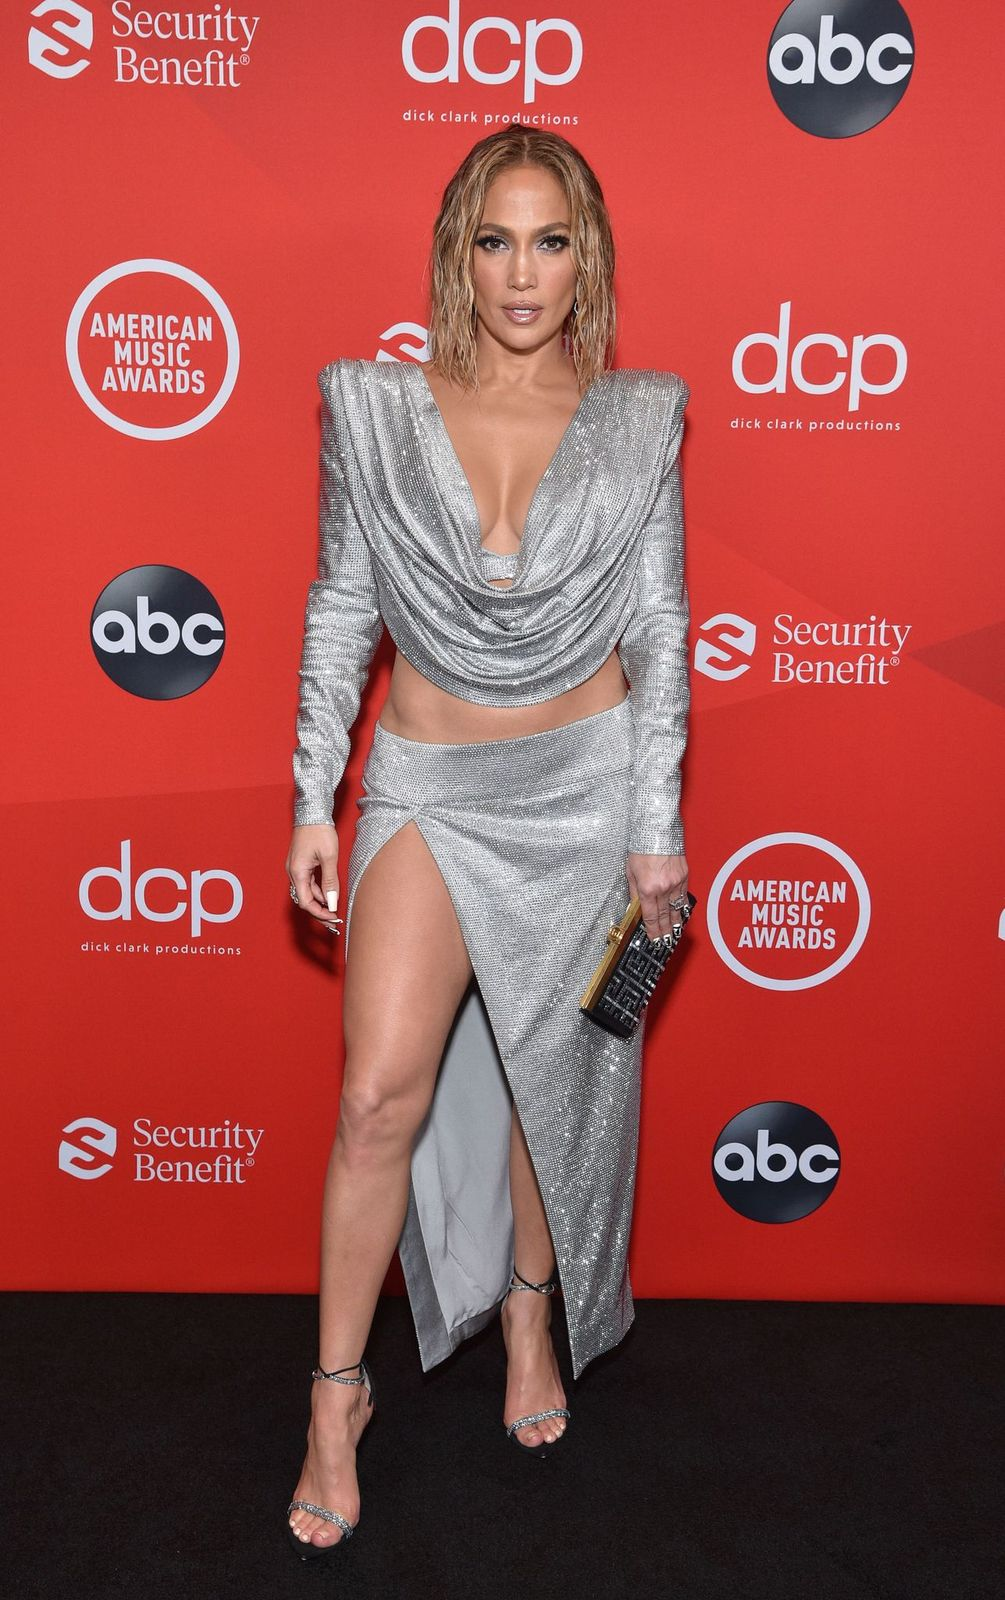 Jennifer Lopez on the red carpet of the 2020 American Music Awards at the Microsoft Theater in Los Angeleson November 22, 2020   Photo: ABC/Getty Images